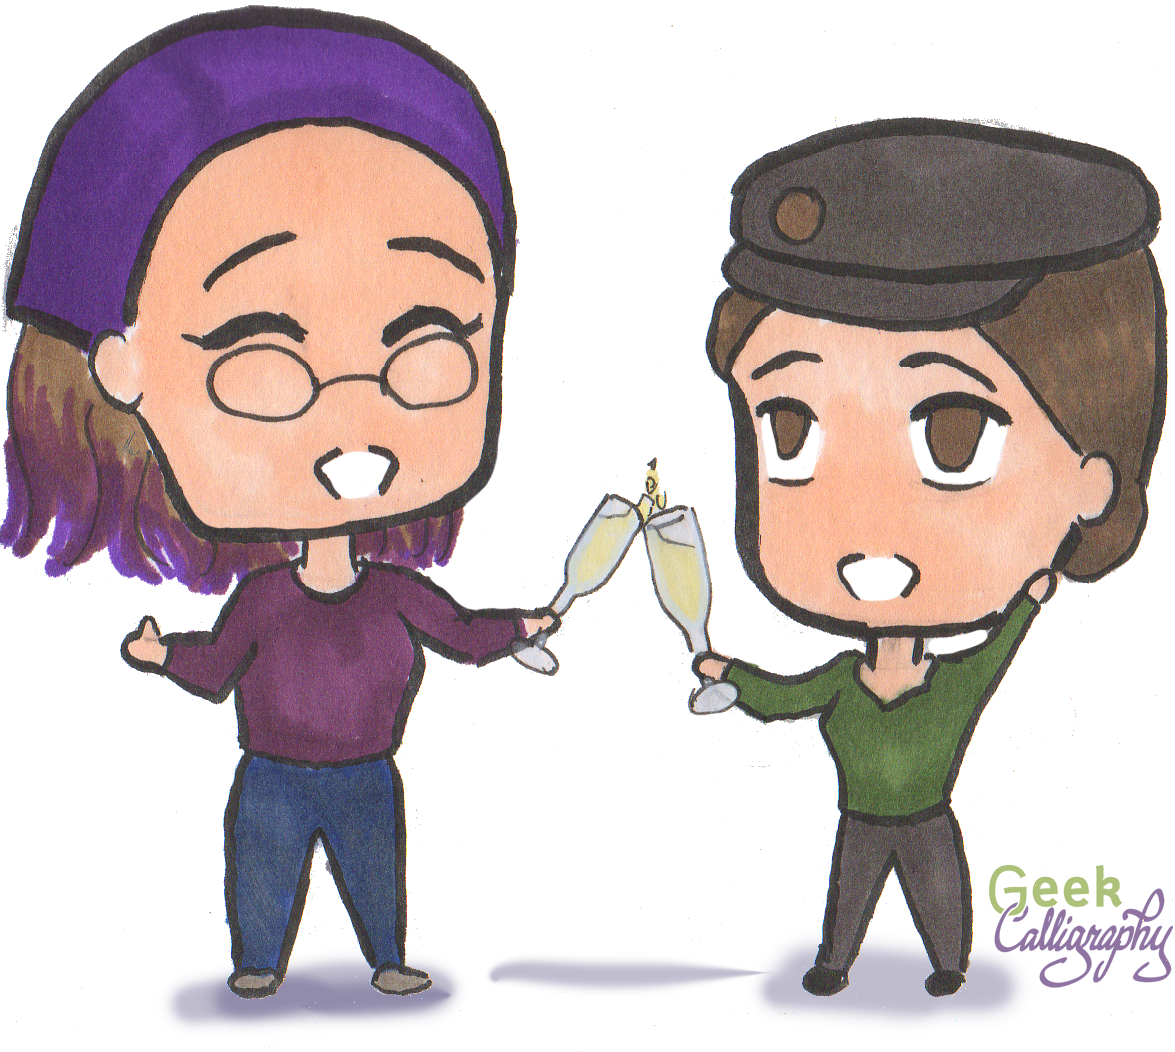 Picture shows chibi Terri and chibi Ariela toasting with champagne flutes. Terri is giving the thumbs up. Not pictured is the next frame, where Ariela is passed out after drinking half a glass of champagne.